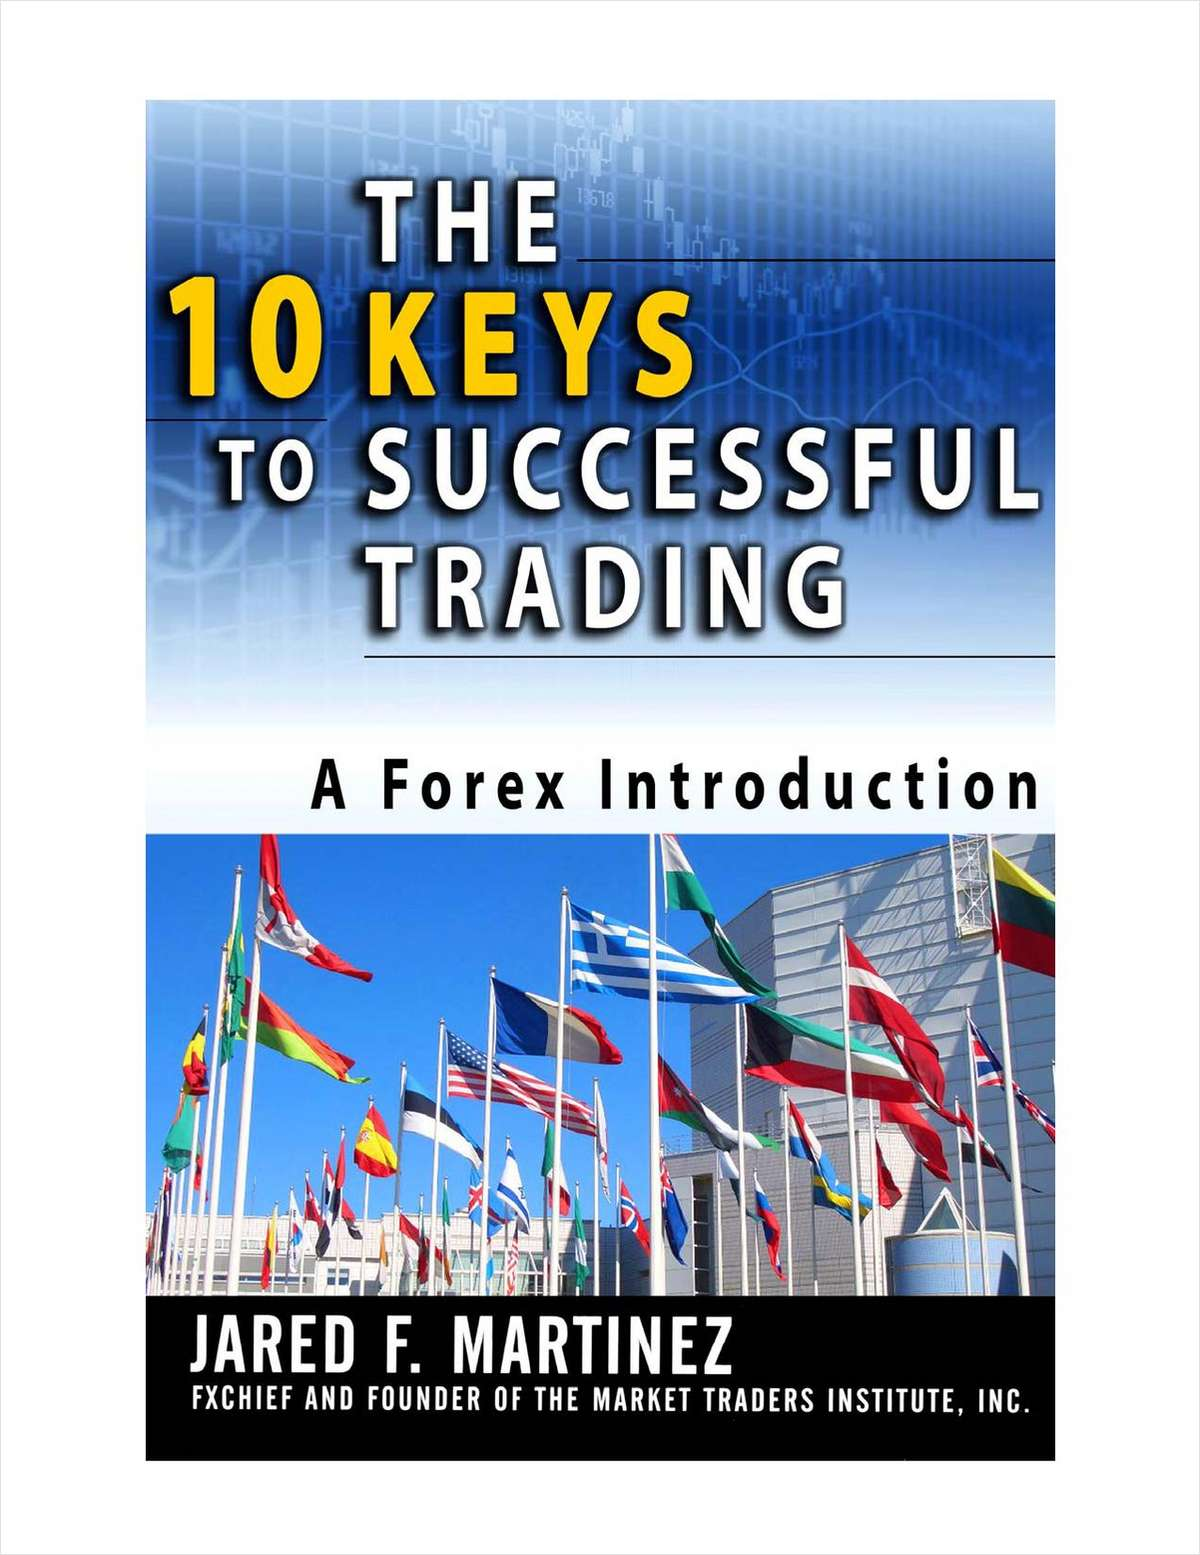 The 10 Keys to Successful Trading